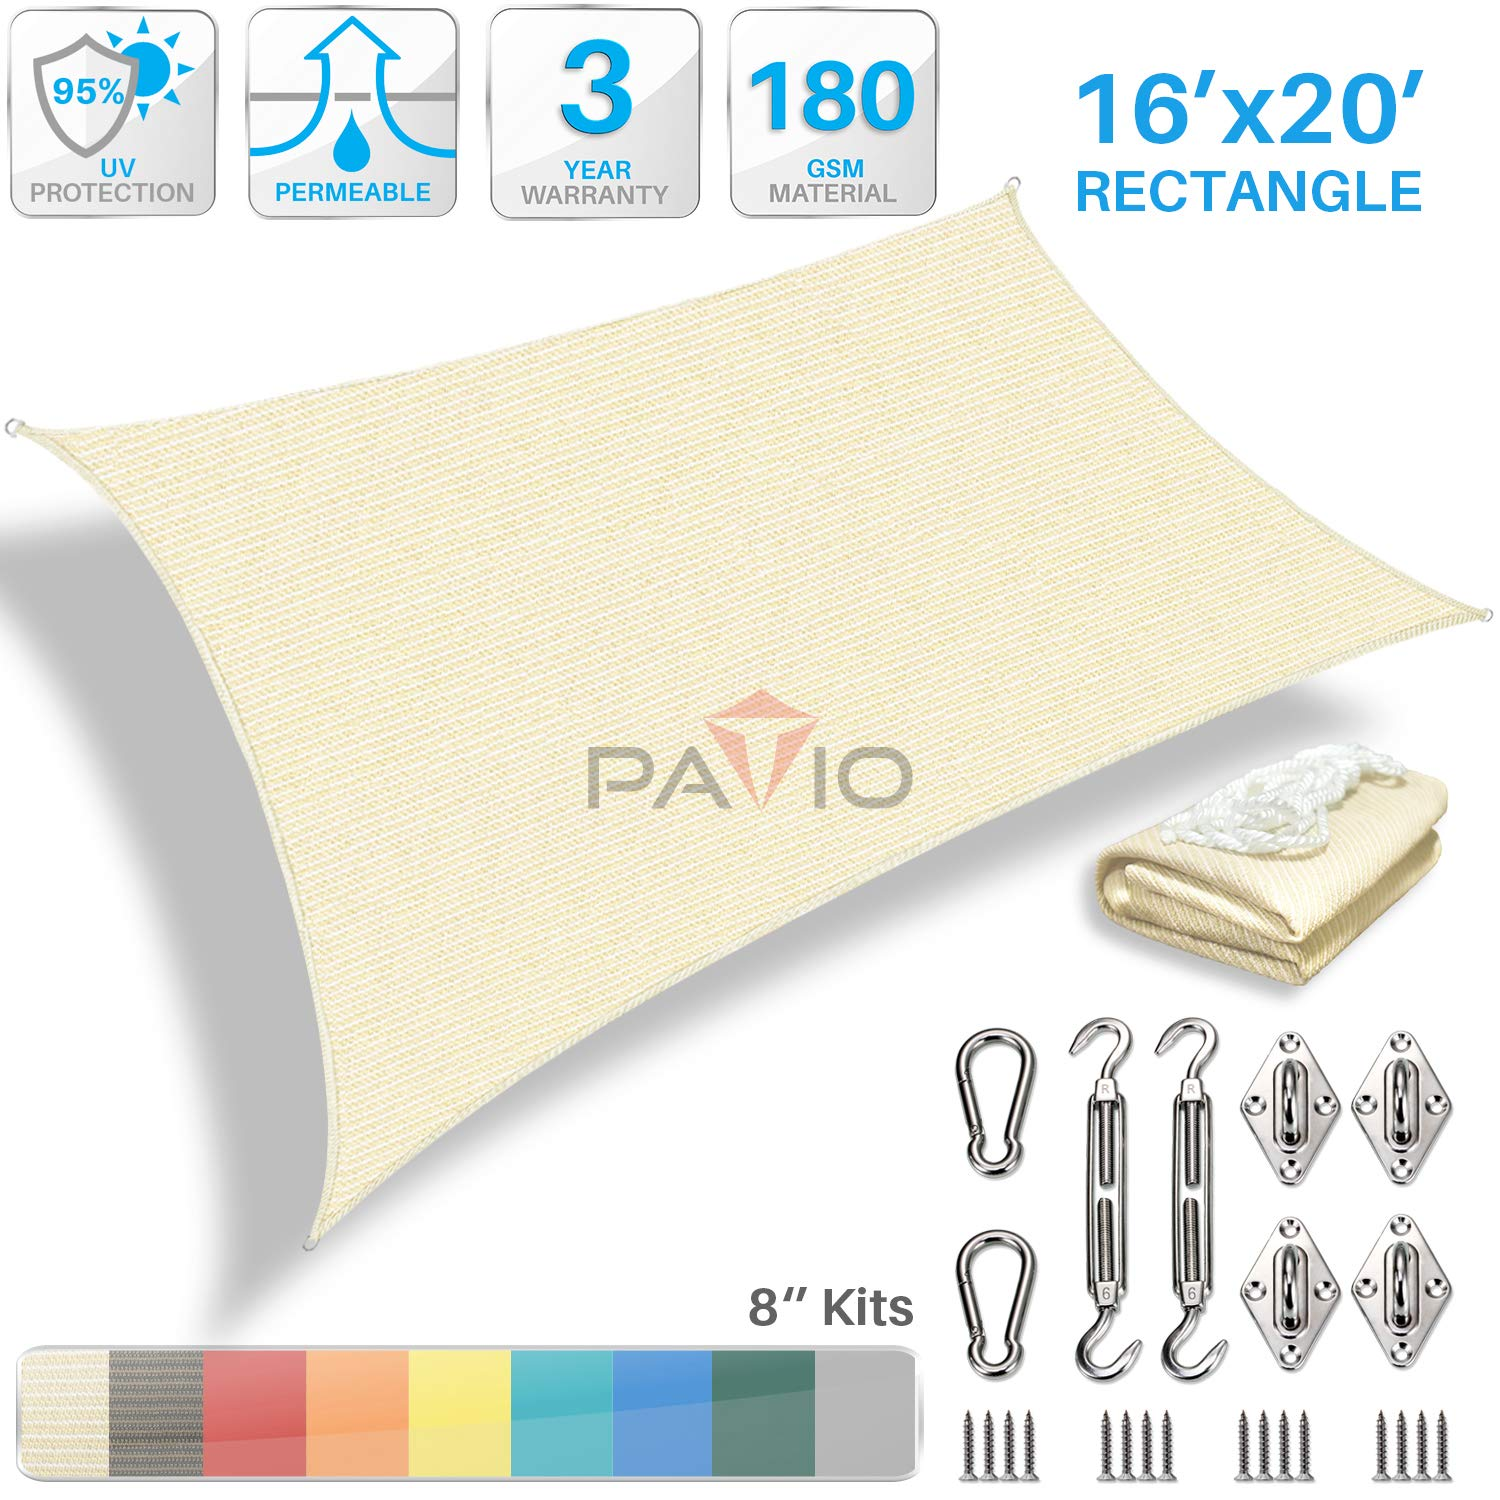 Patio Paradise 16' x 20' Sun Shade Sail with 8 inch Hardware Kit, Beige Rectangle Canopy Durable Shade Fabric Outdoor UV Shelter Cover - 3 Year Warranty - Custom